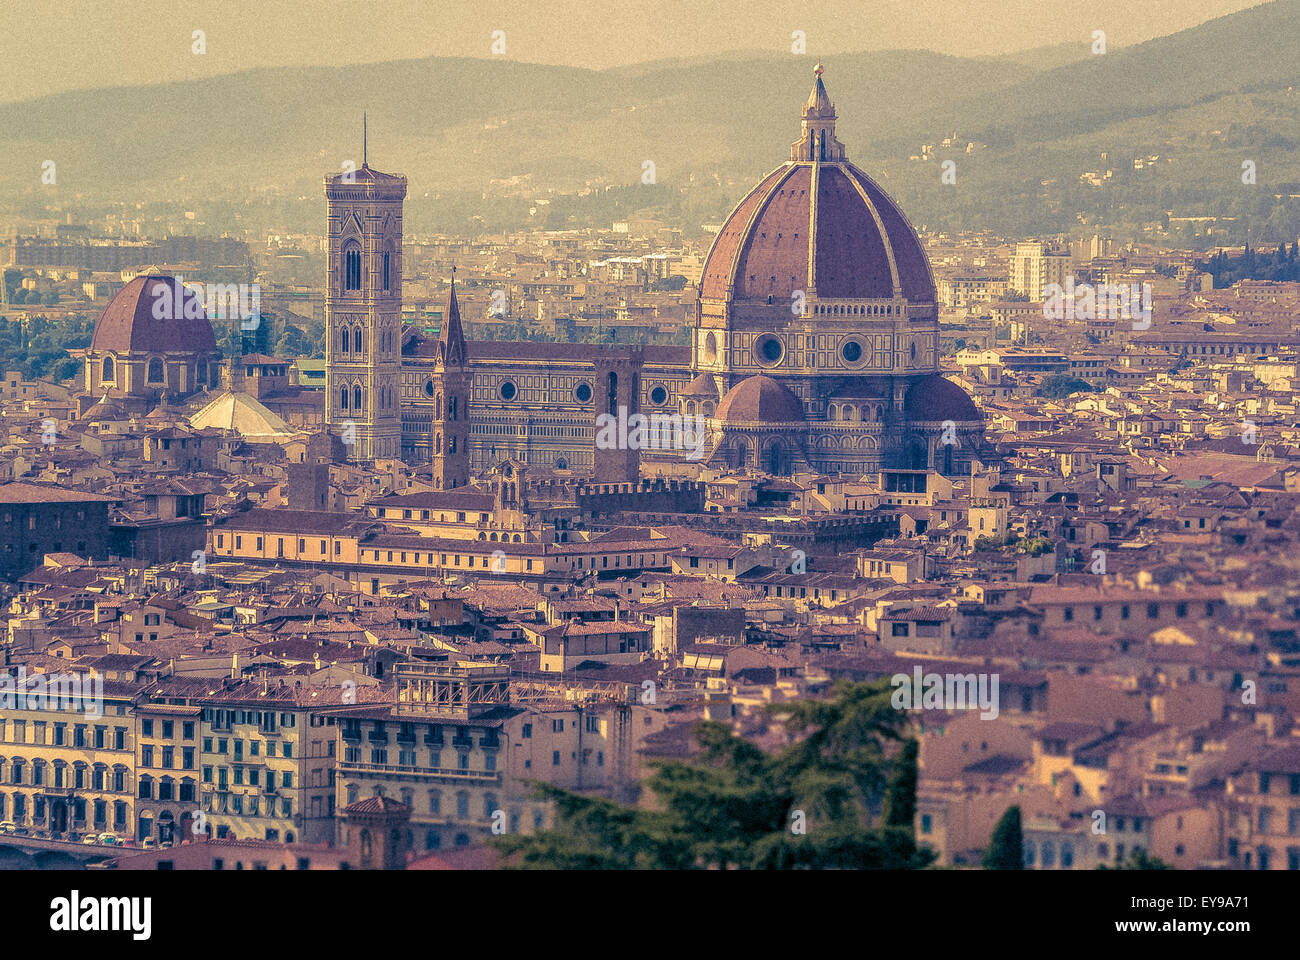 Florence Cathedral or Duomo with dome designed by Flippo Brunelleschi. Florence, Italy. - Stock Image